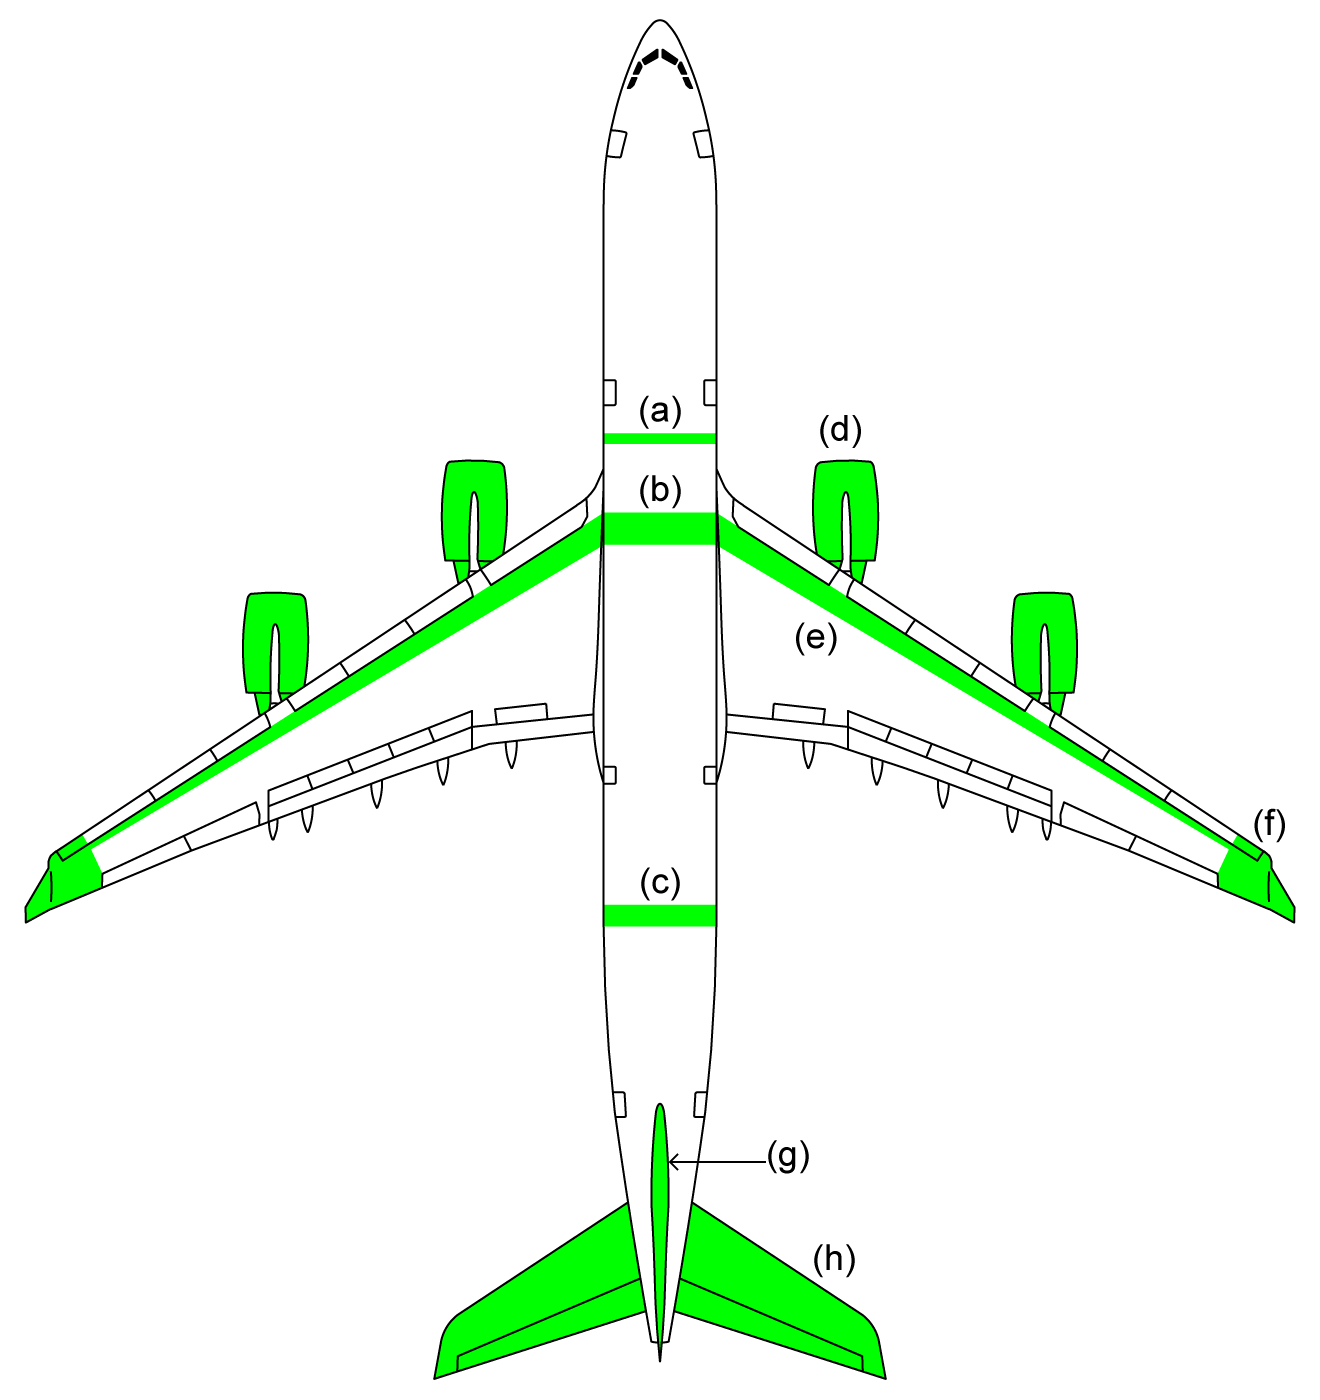 file major differences between a340 300 and a340 500 png wikimedia